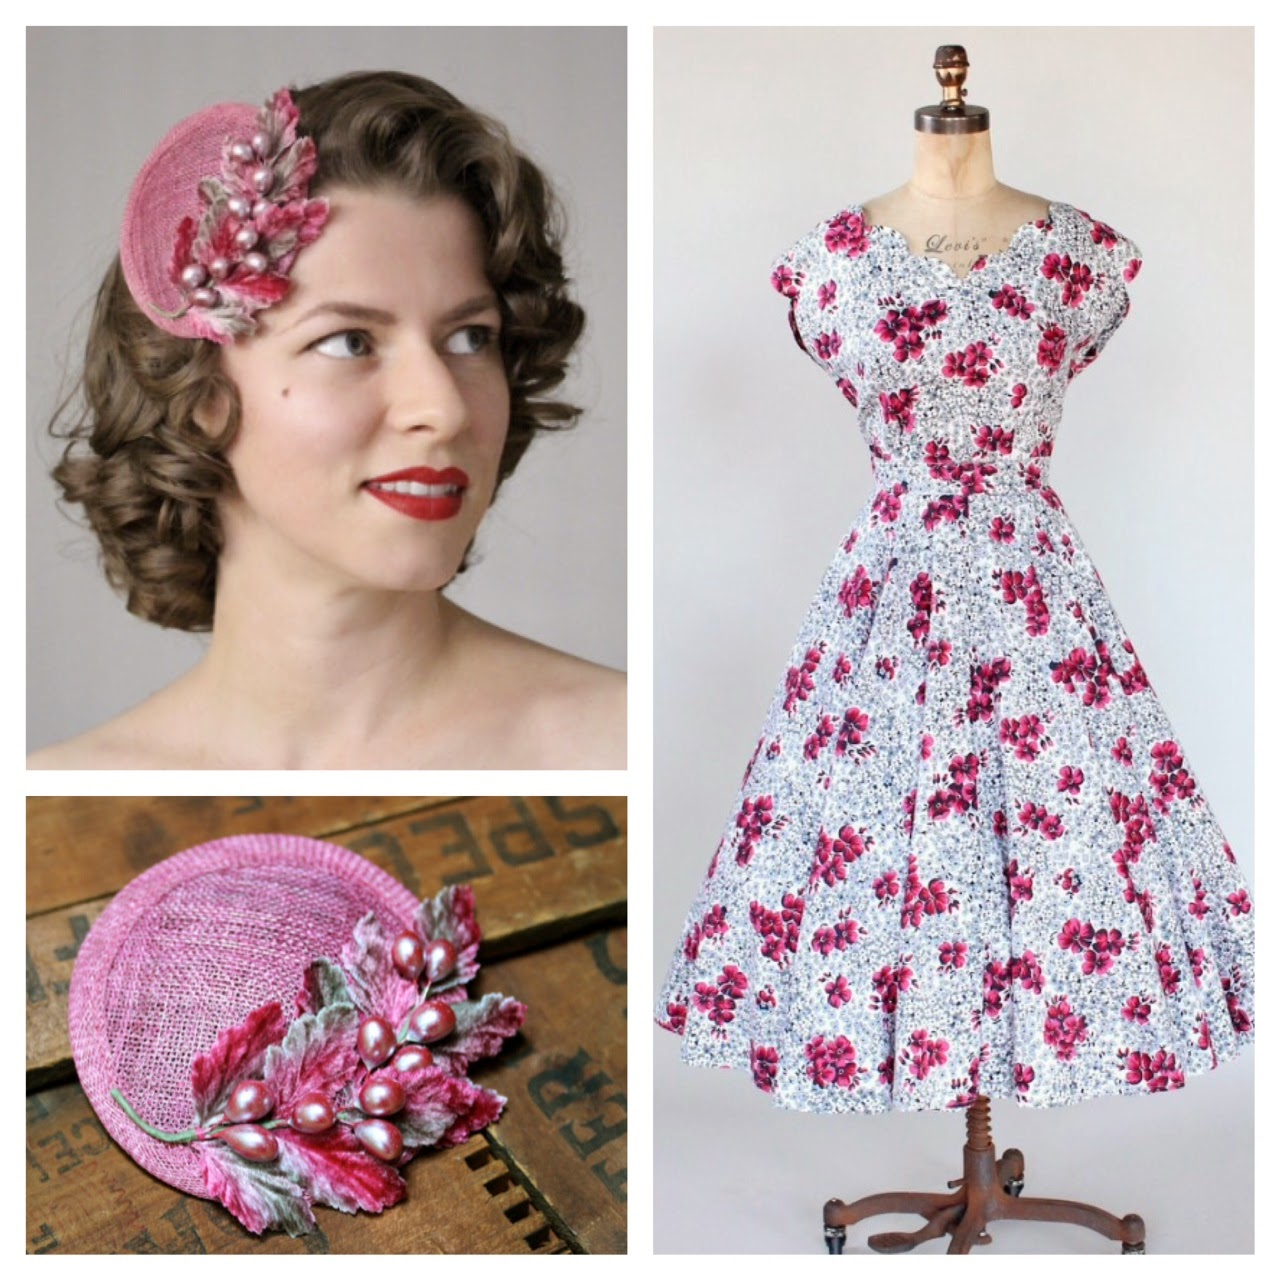 Berry Bliss - 40s/50s fashion pairings #1940s #fashion #1950s #dress #pink